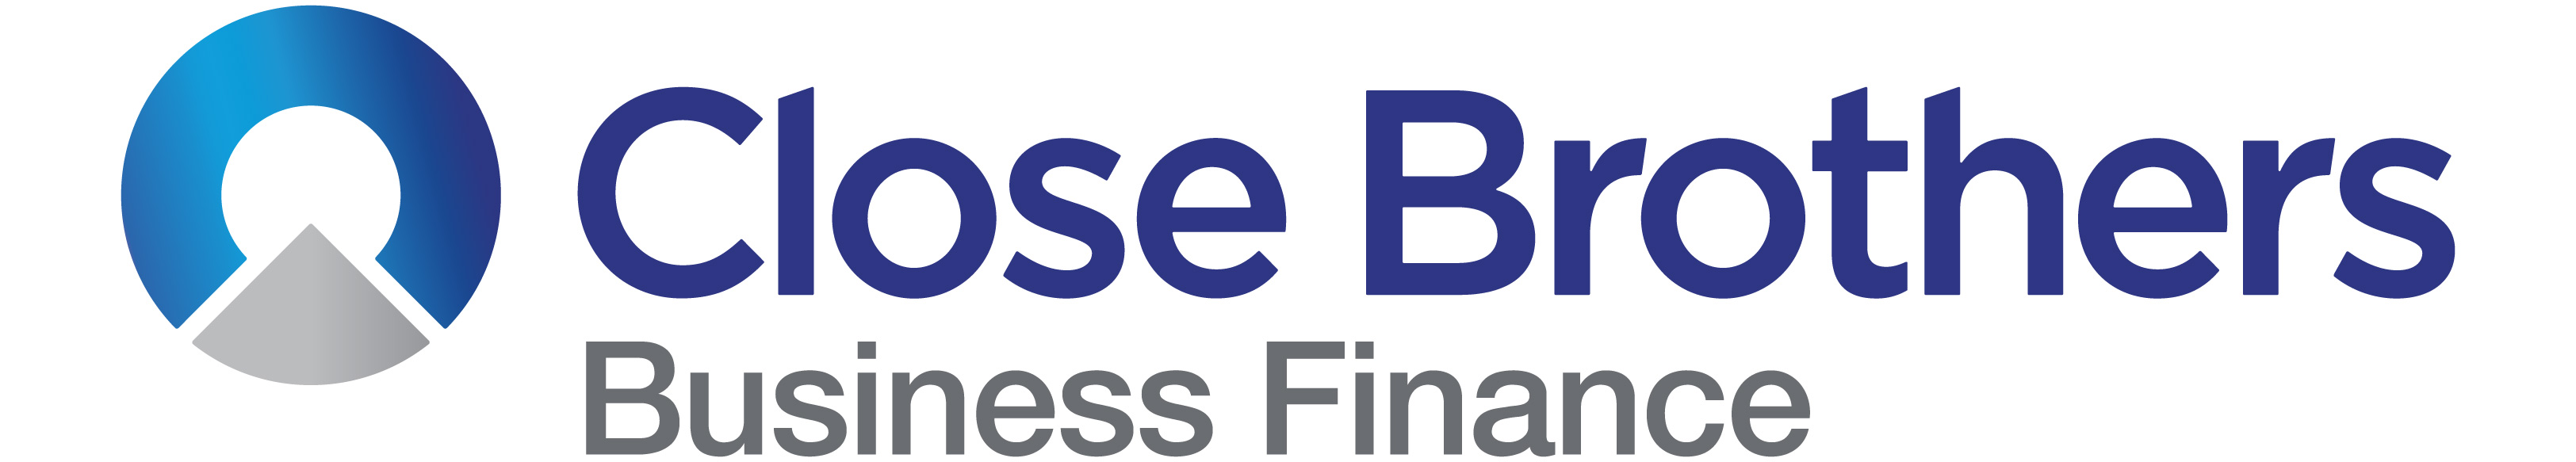 Close Brothers Business Finance